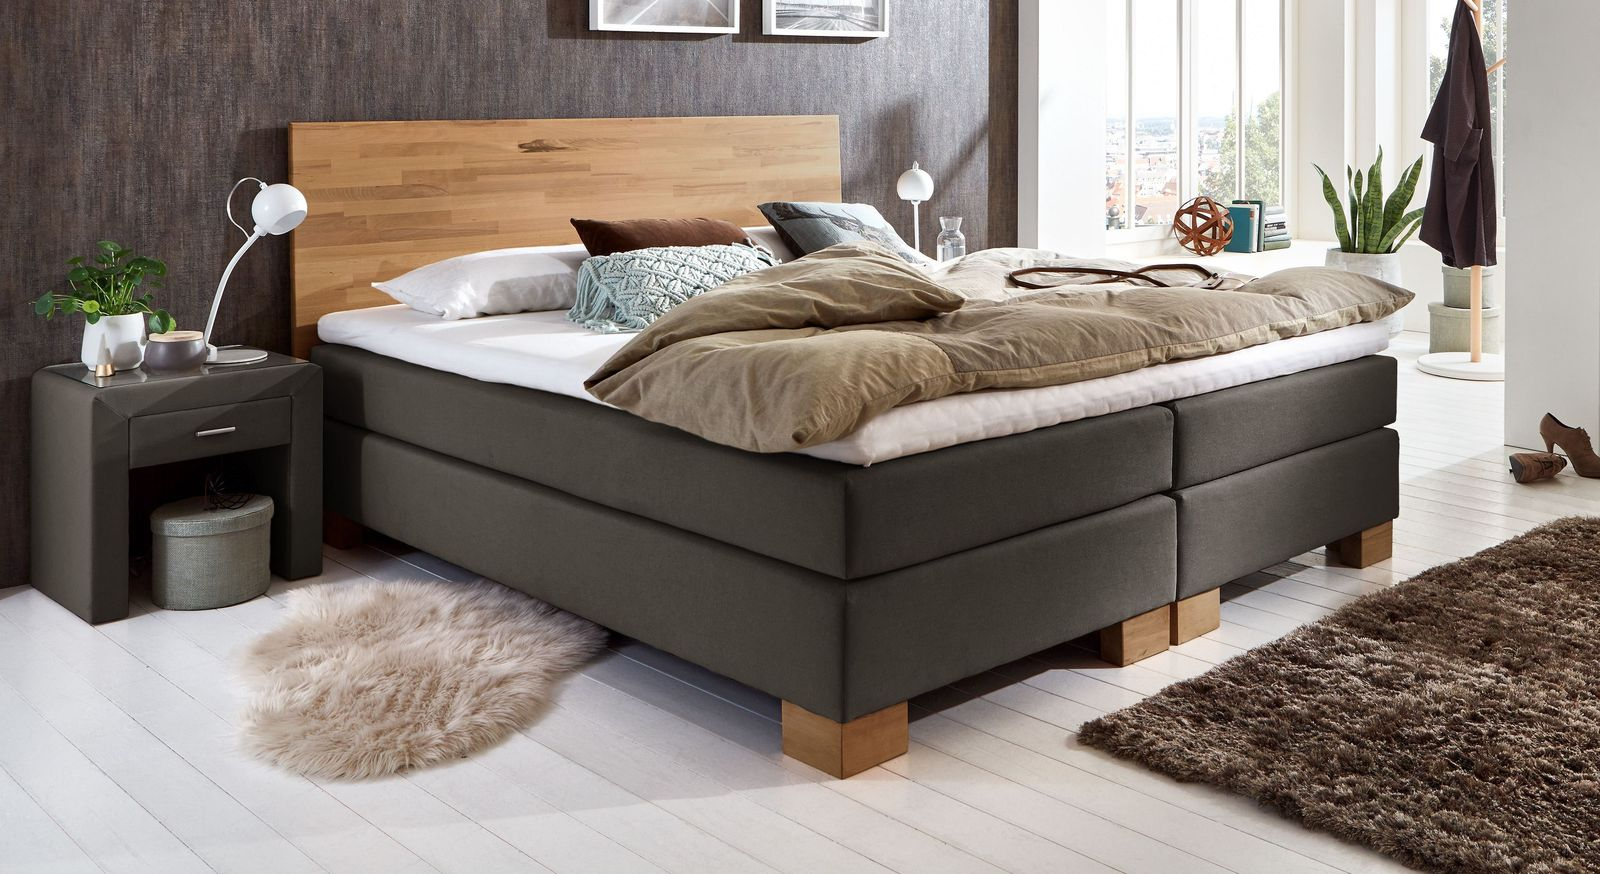 designer boxspringbett mit massivholz kopfteil peachland. Black Bedroom Furniture Sets. Home Design Ideas